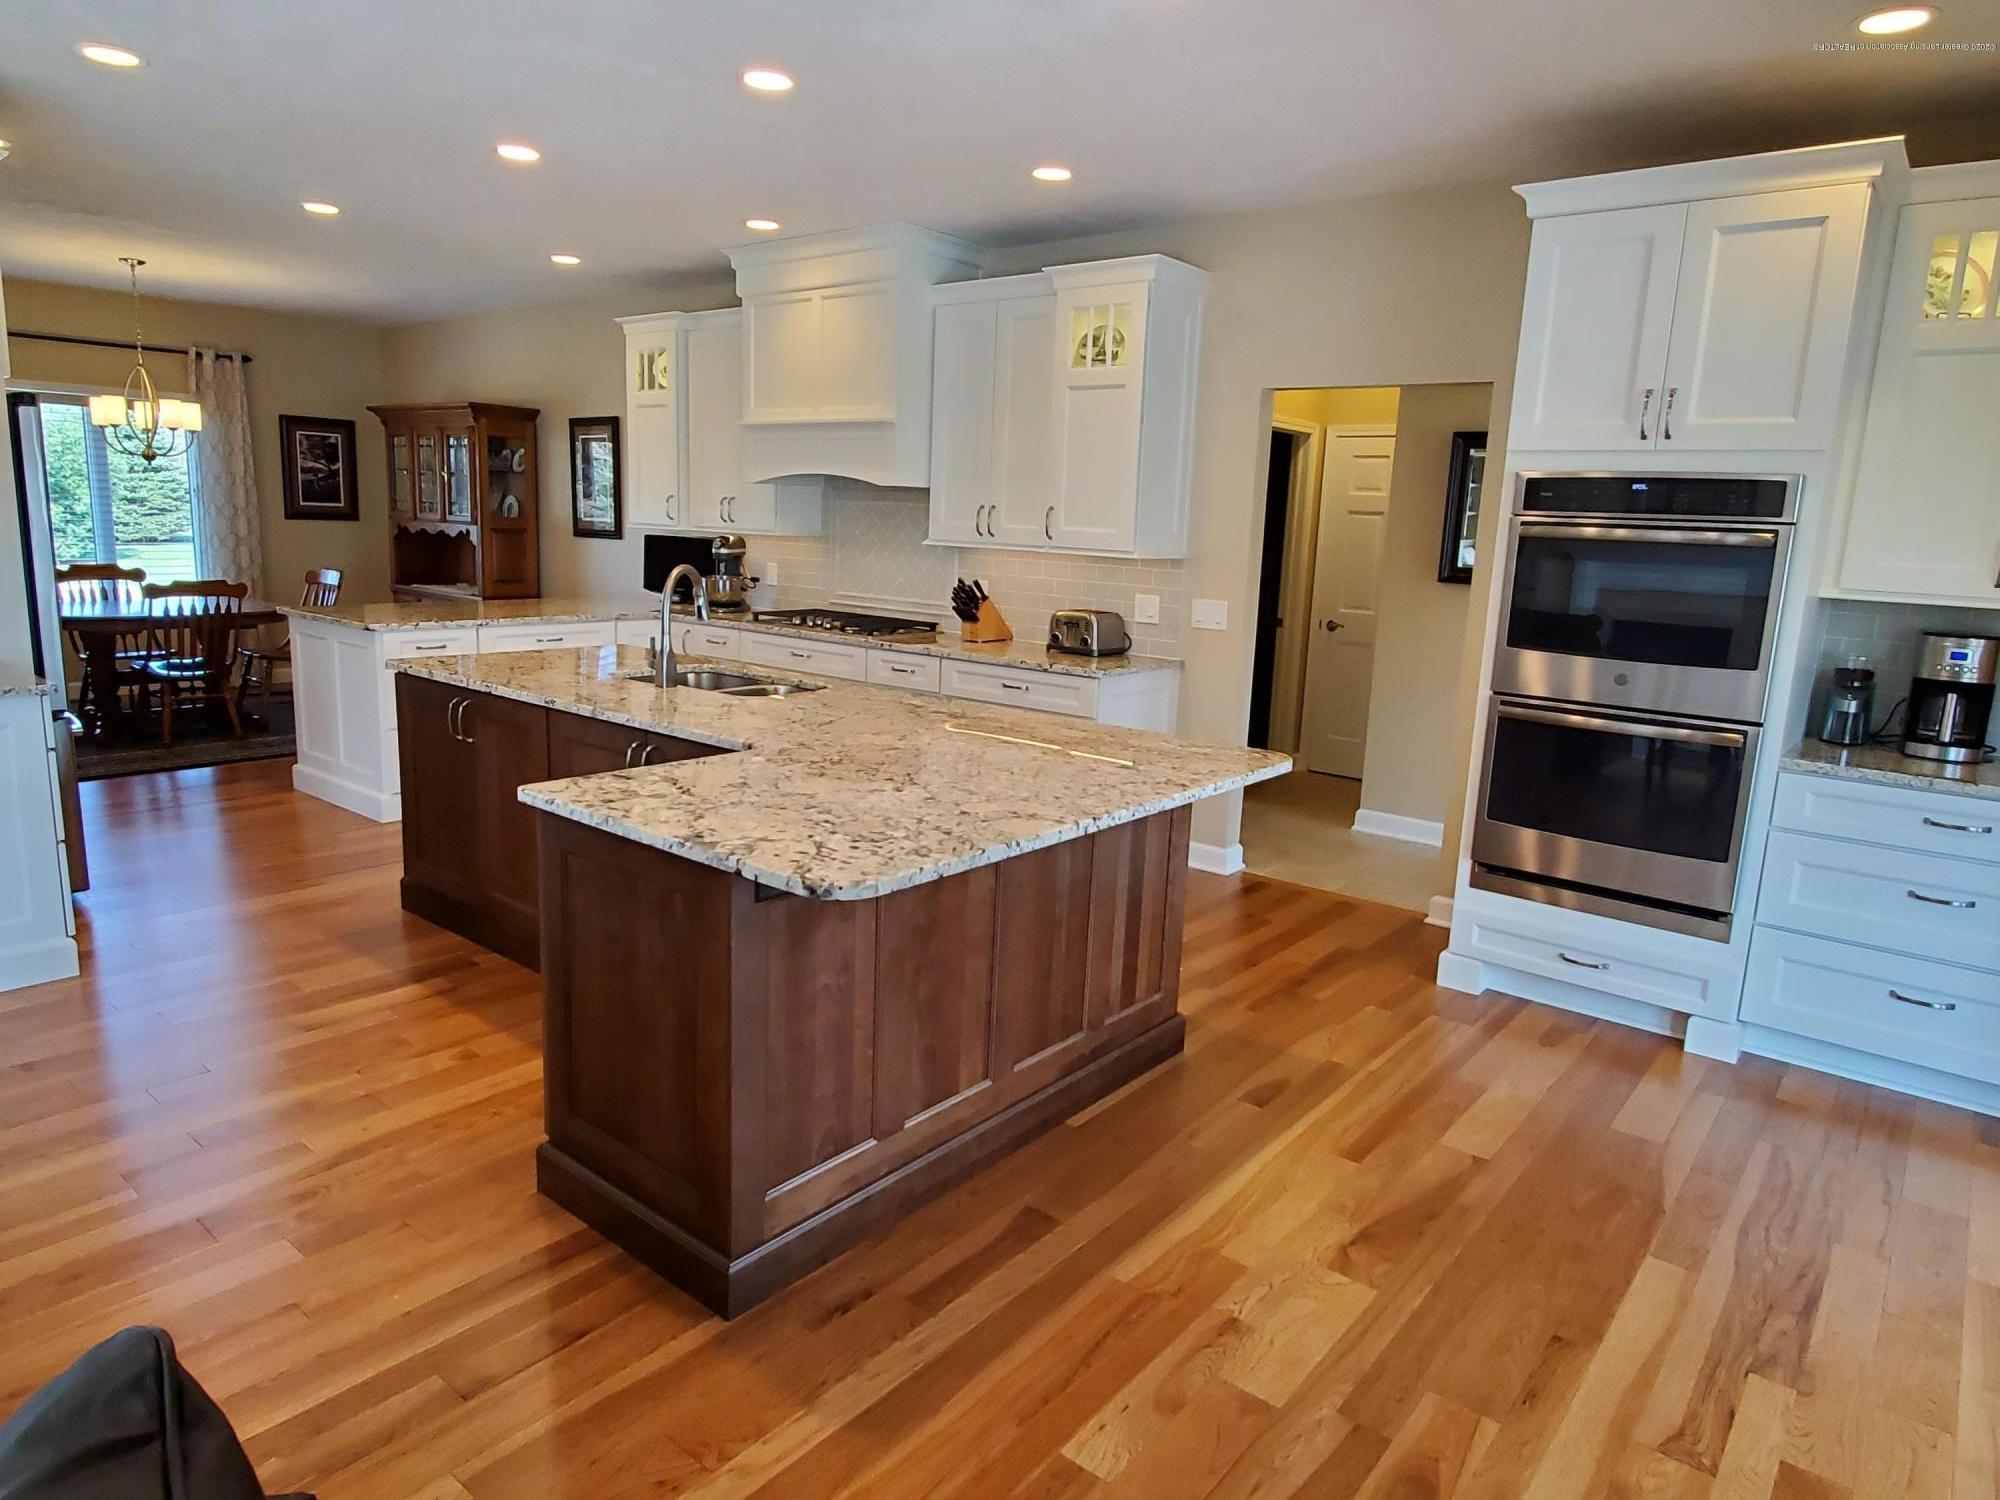 558 N Wheaton Rd - Gourmet Kitchen - 14